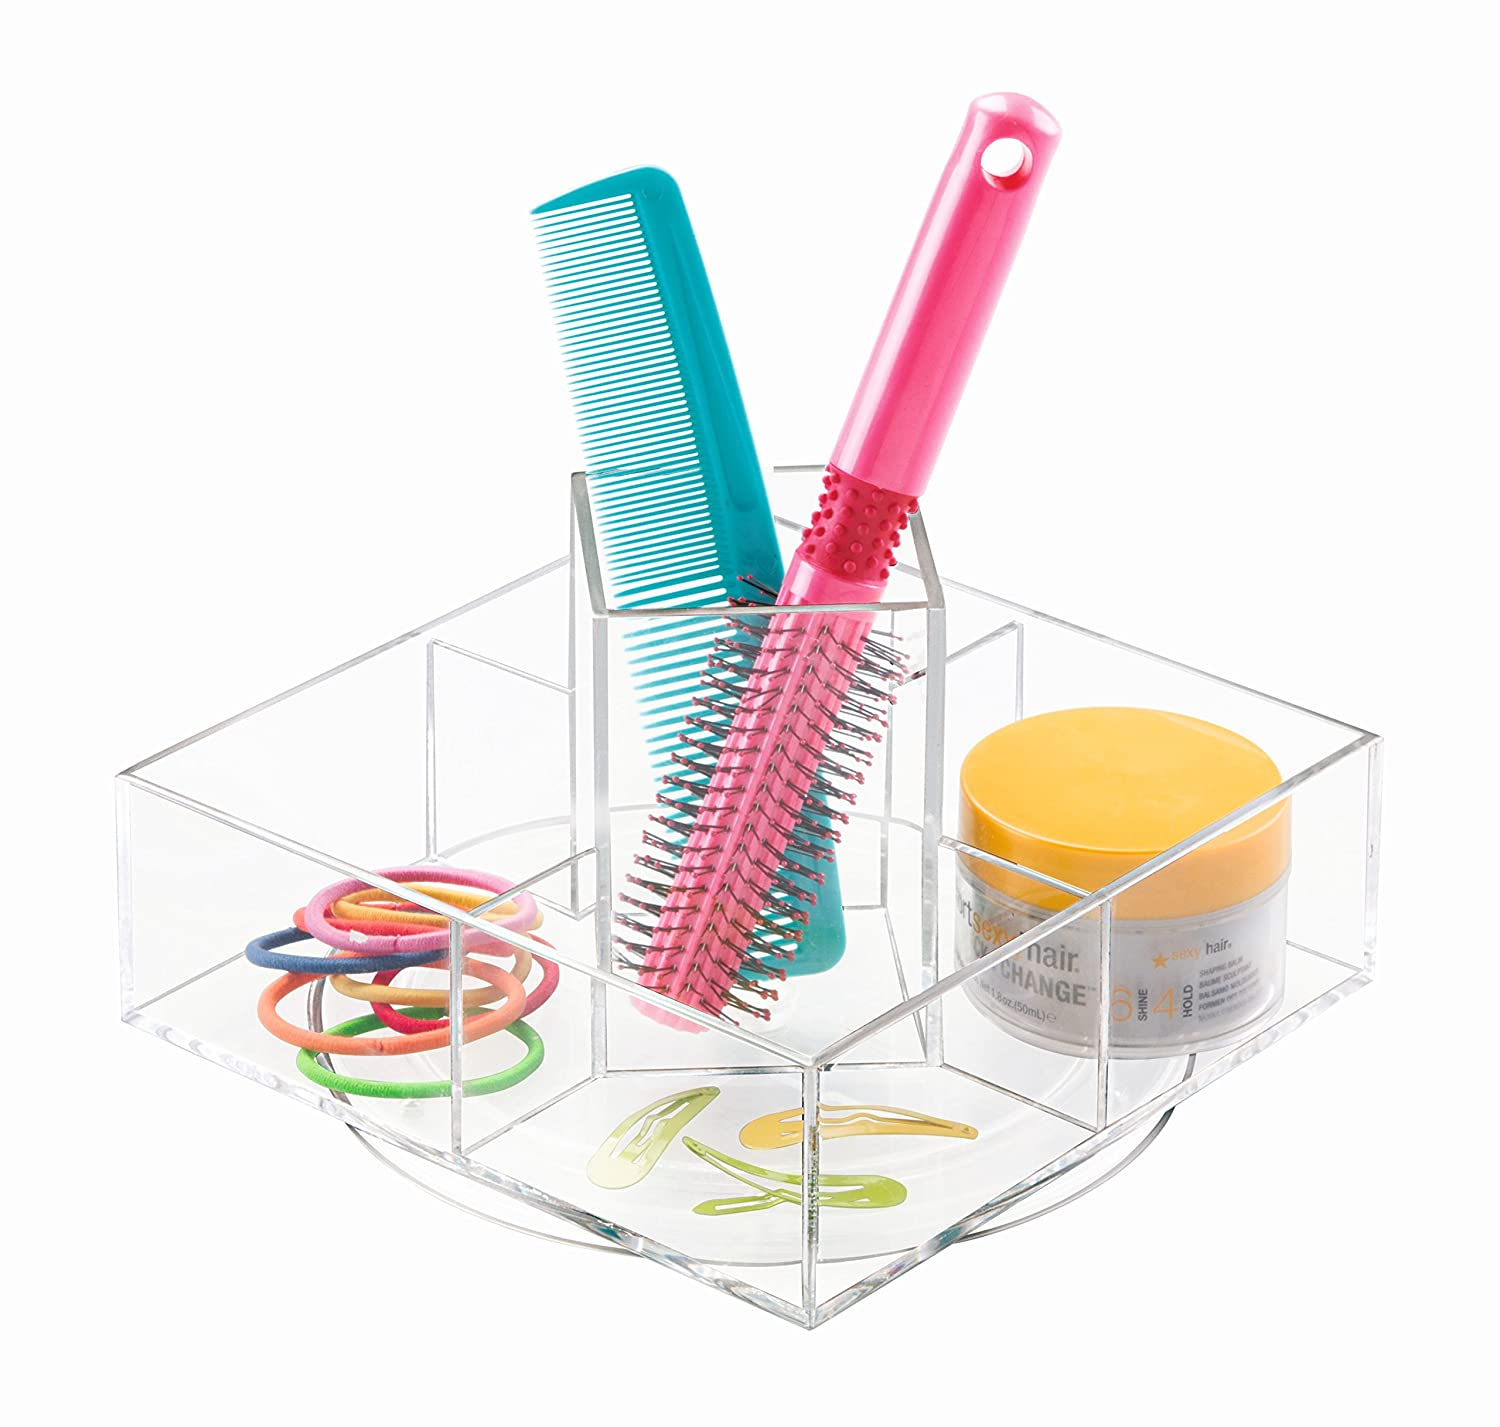 InterDesign Luci Turntable Cosmetic Organizer for Vanity Cabinet to Hold Makeup and Beauty Products, Clear 20250EU